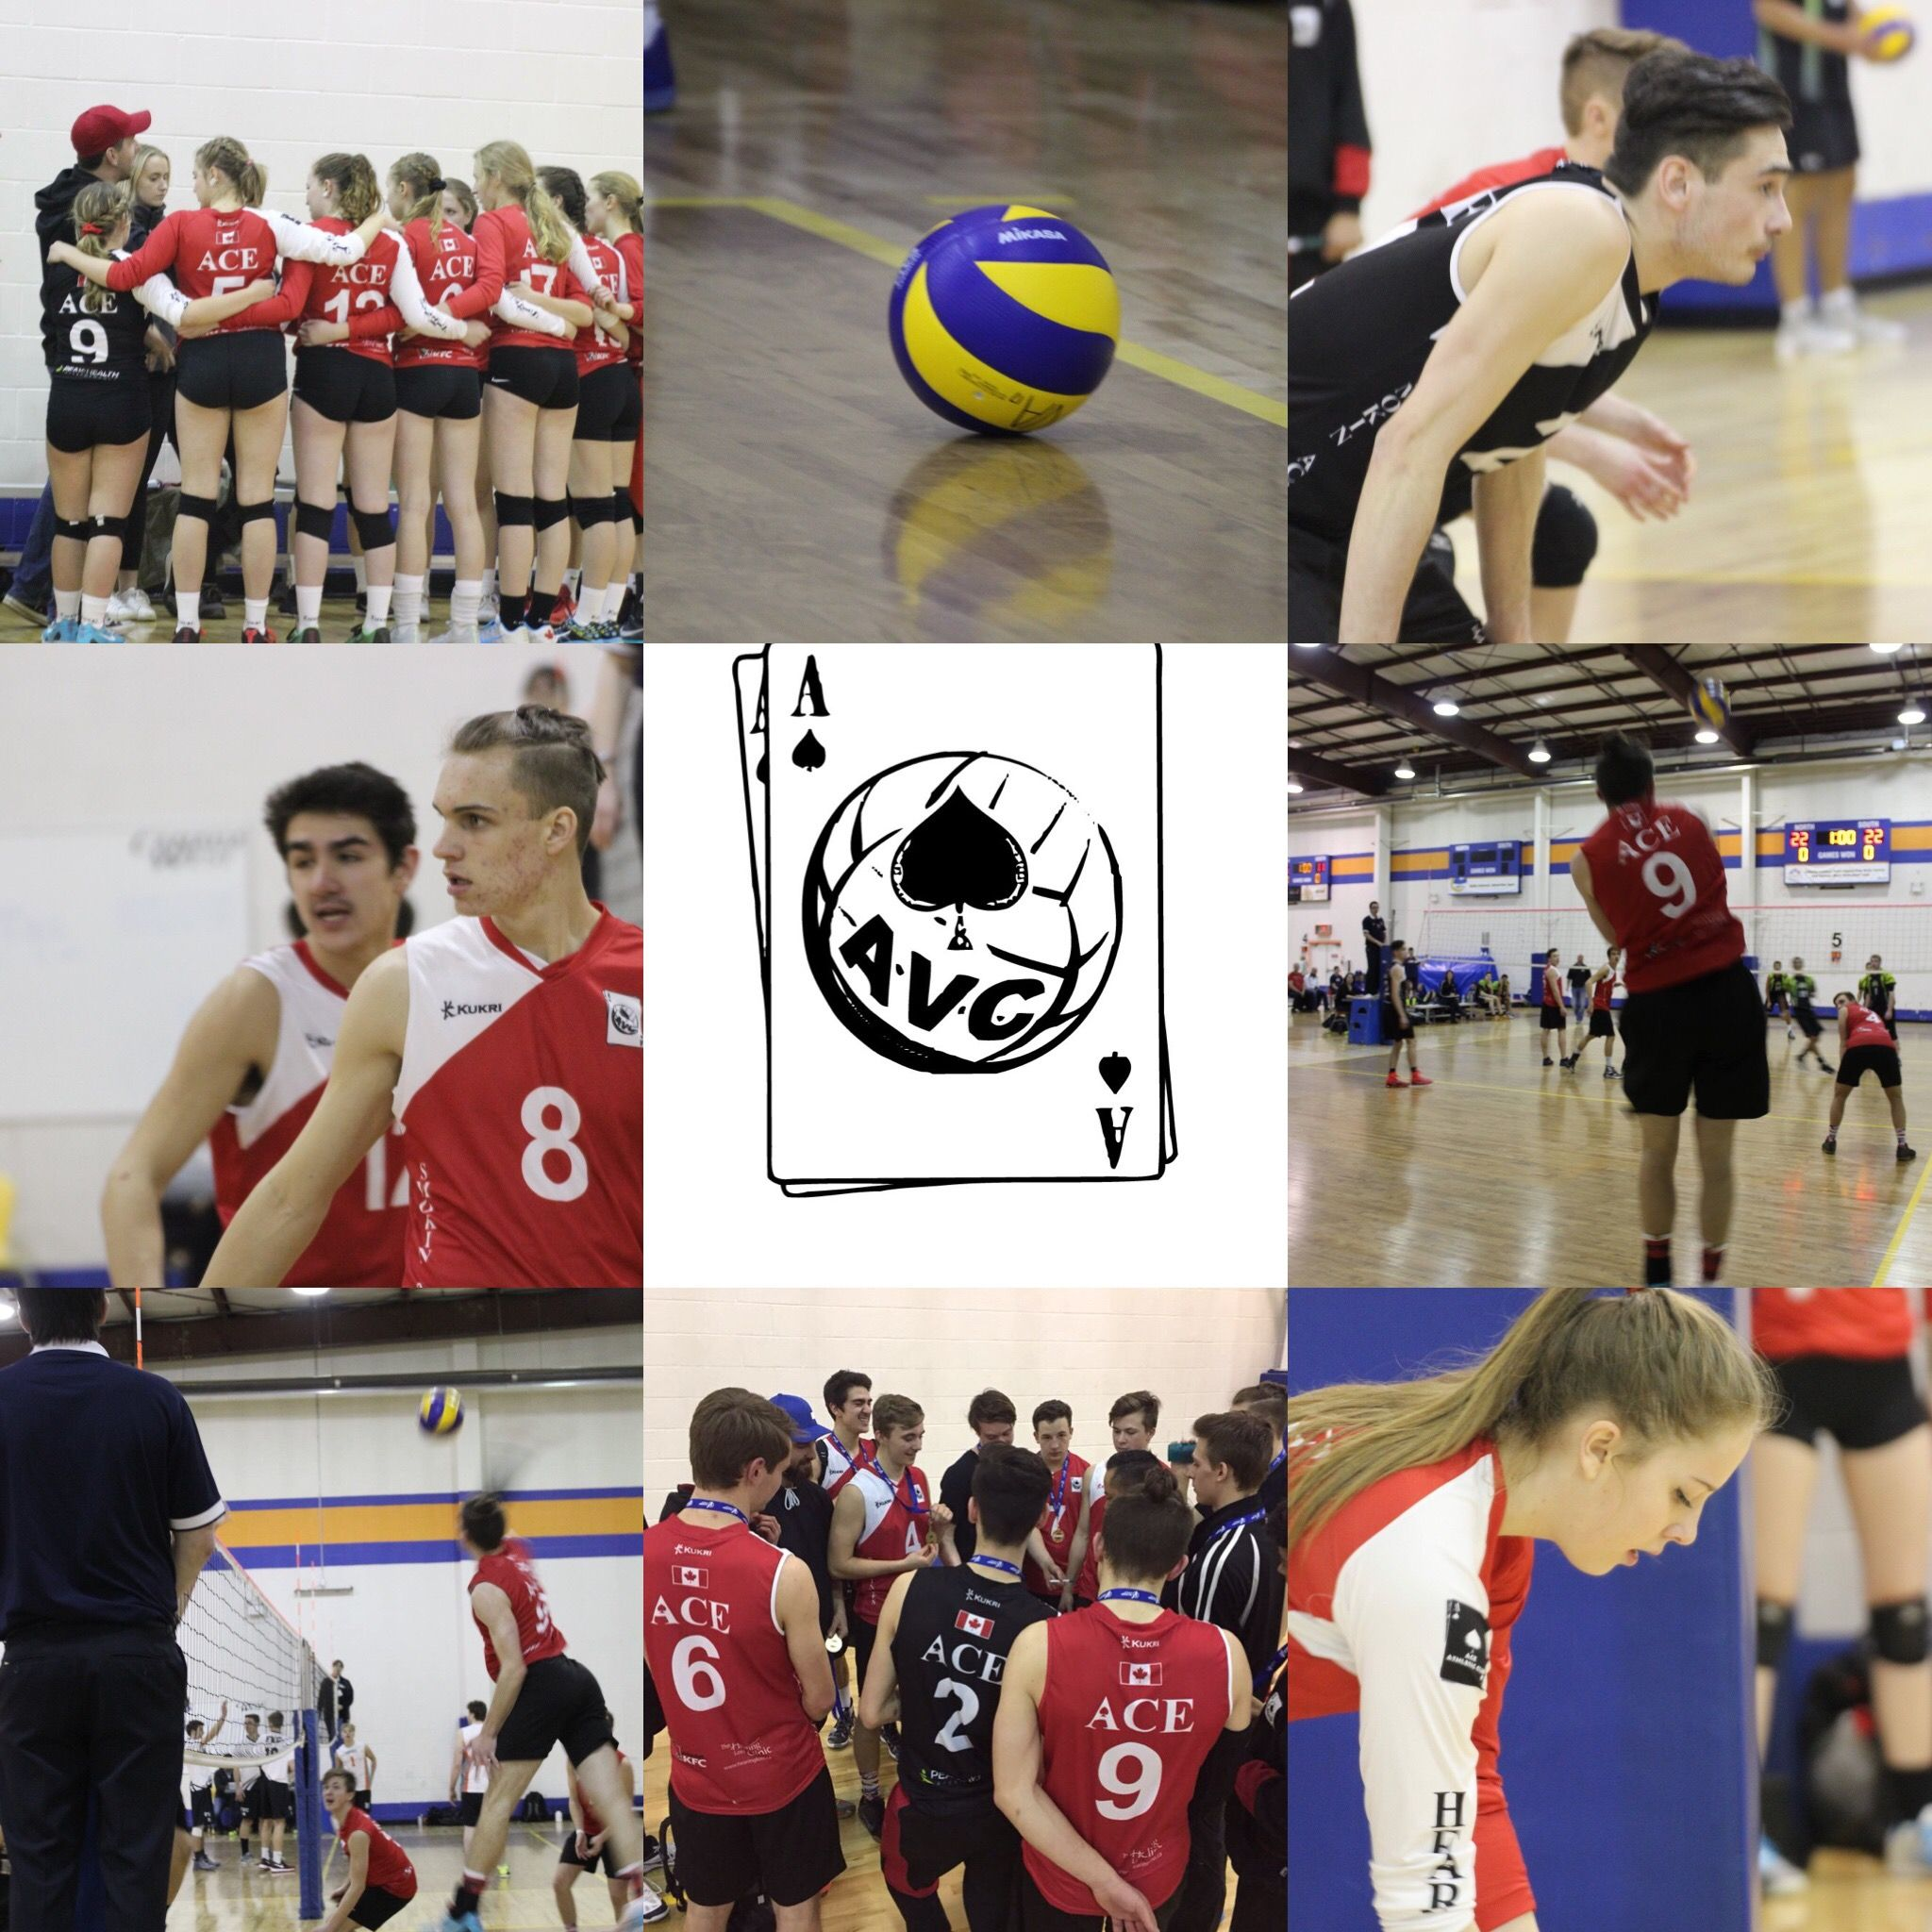 Pin By Coach Wildman On Ace Volleyball Club Volleyball Clubs Baseball Cards Baseball